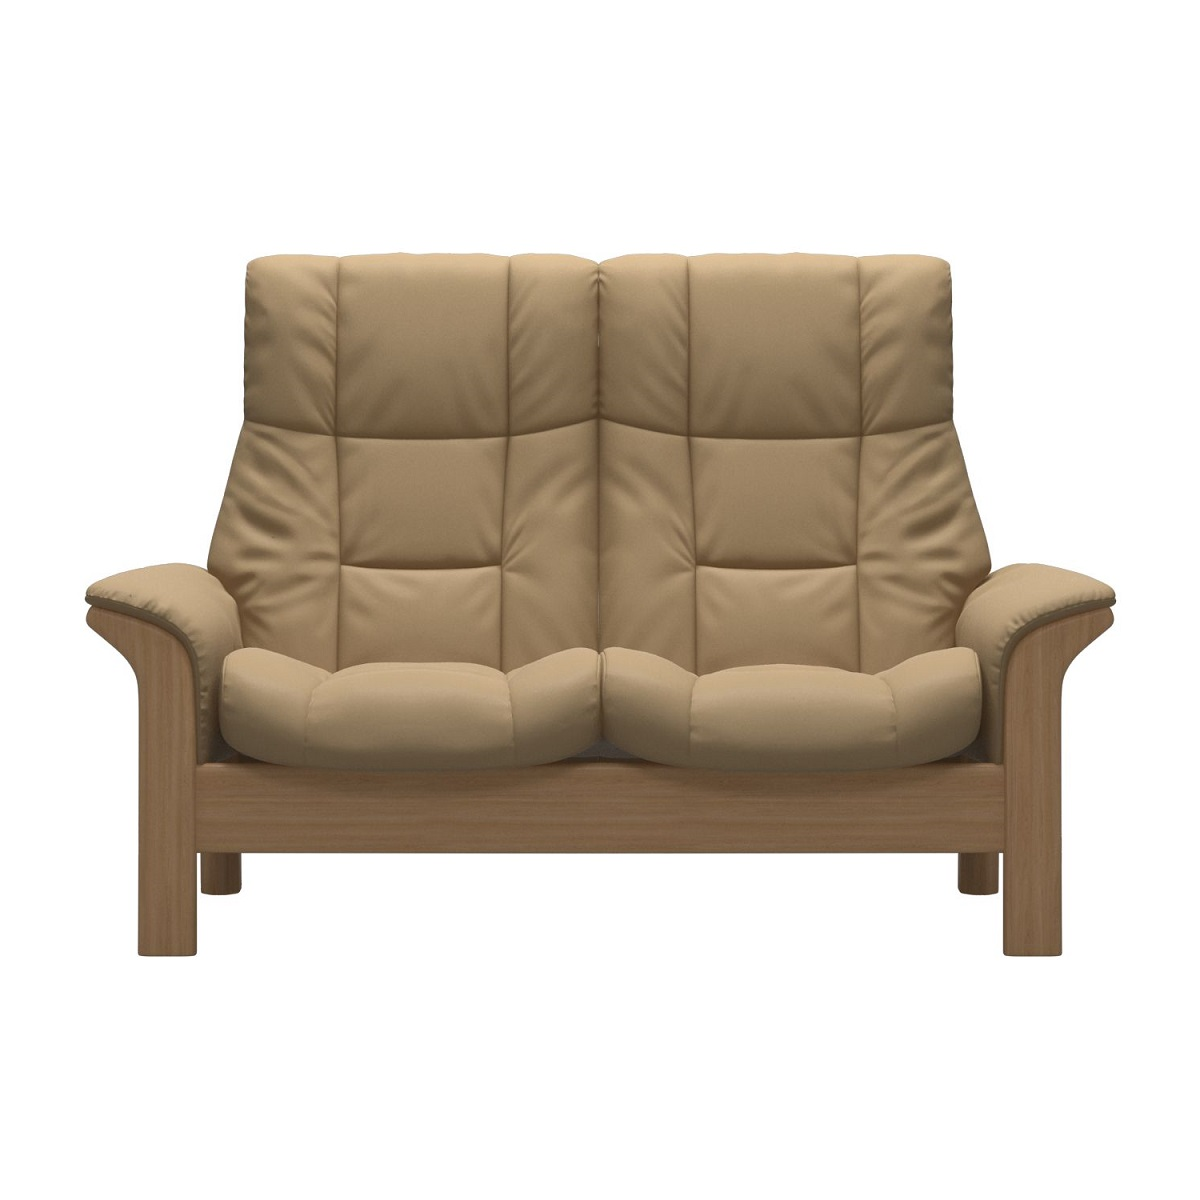 Stressless Windsor 2 Seater High Back Sand Sofa